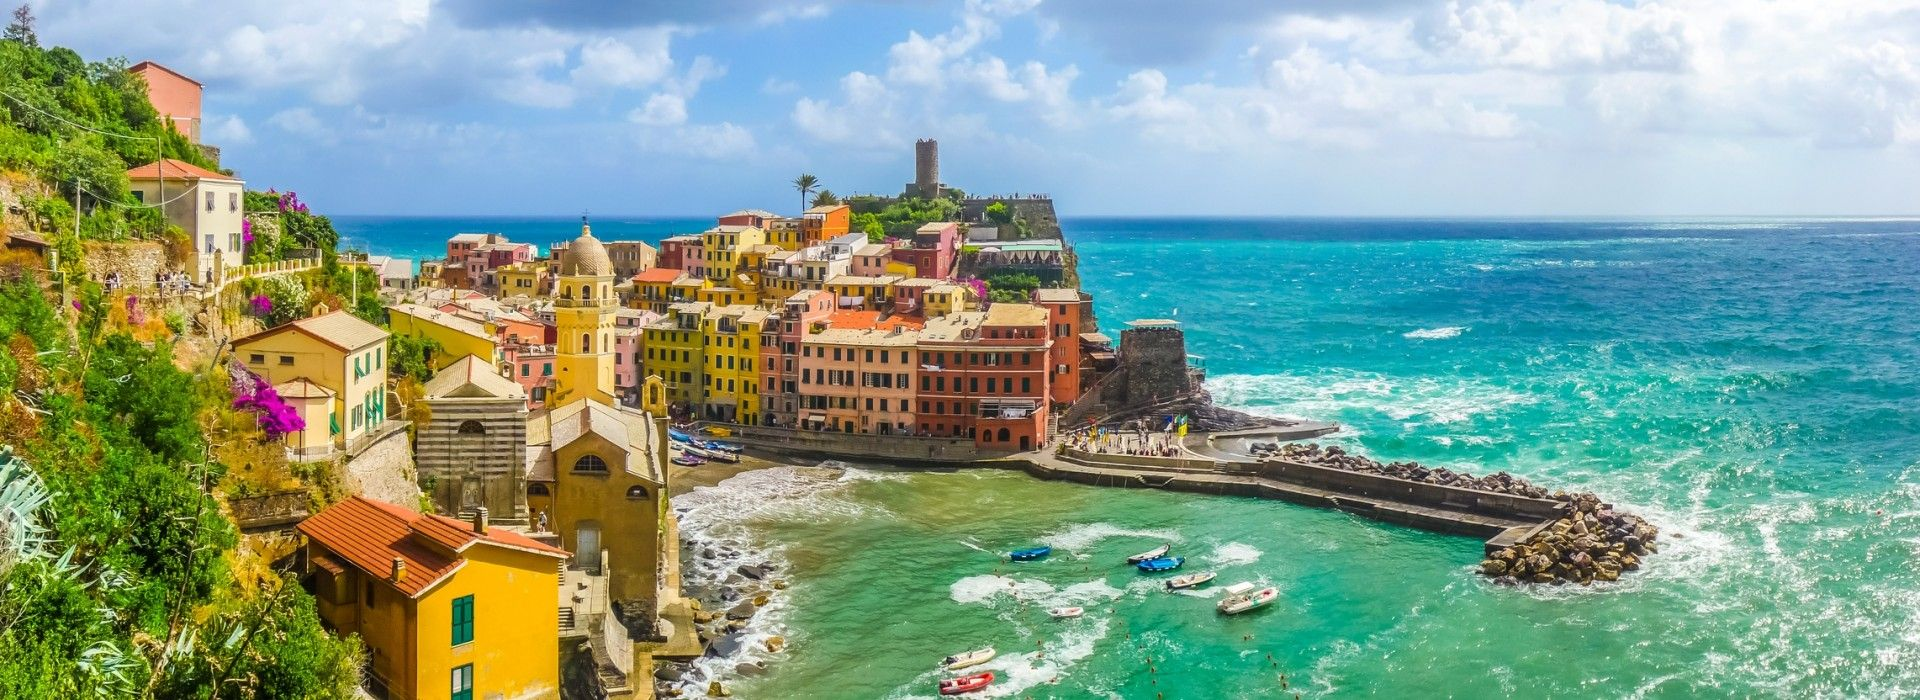 Sightseeing, attractions, culture and history Tours in Barletta